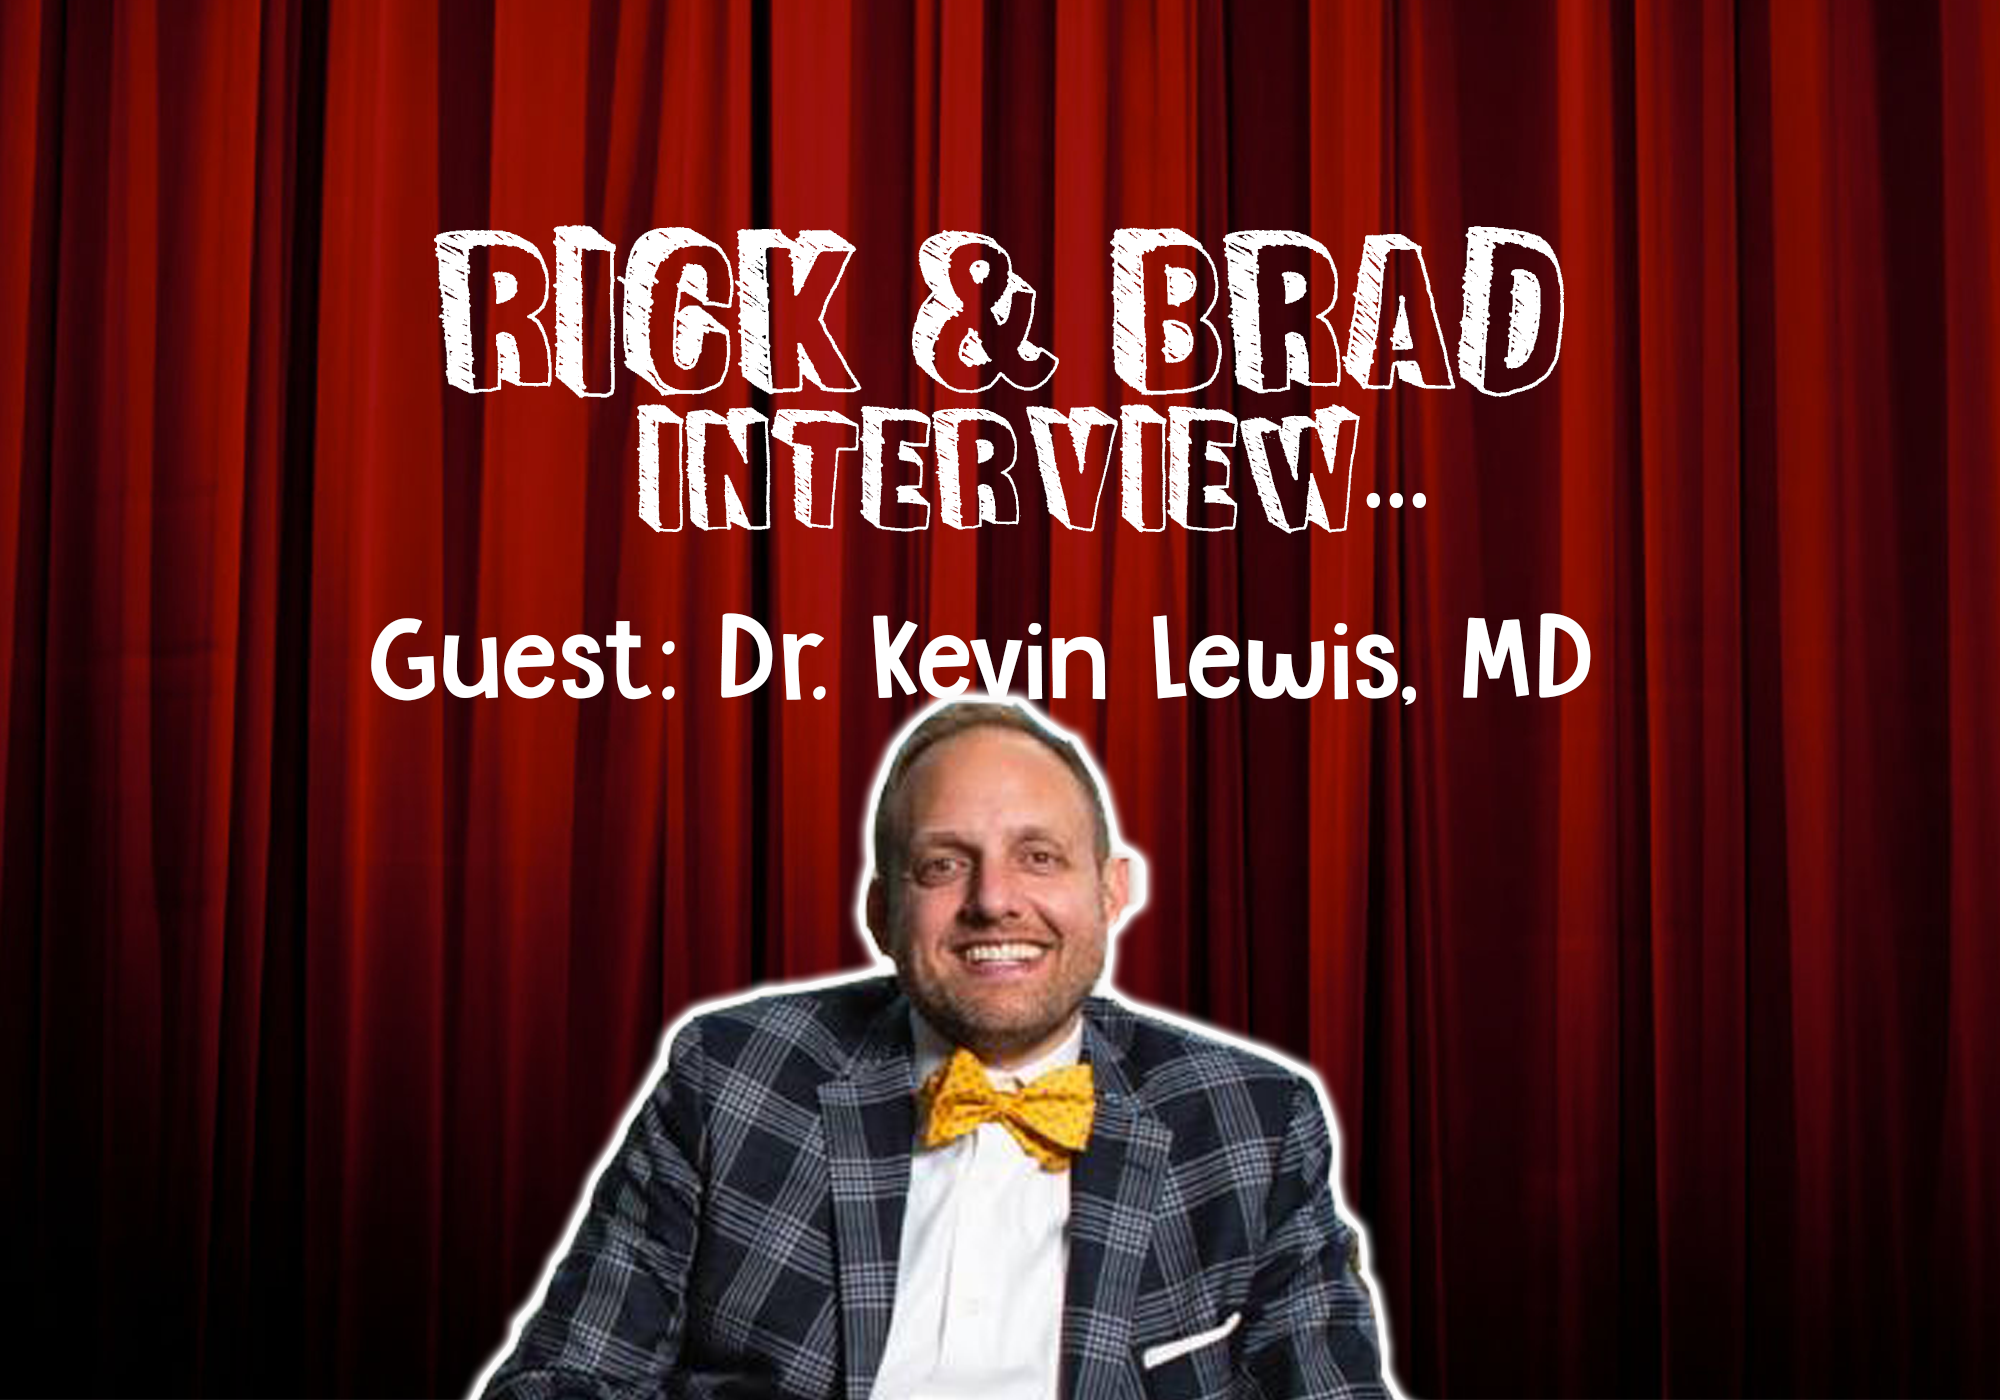 [PODCAST] Dr. Kevin Lewis Answers Your Medical Questions